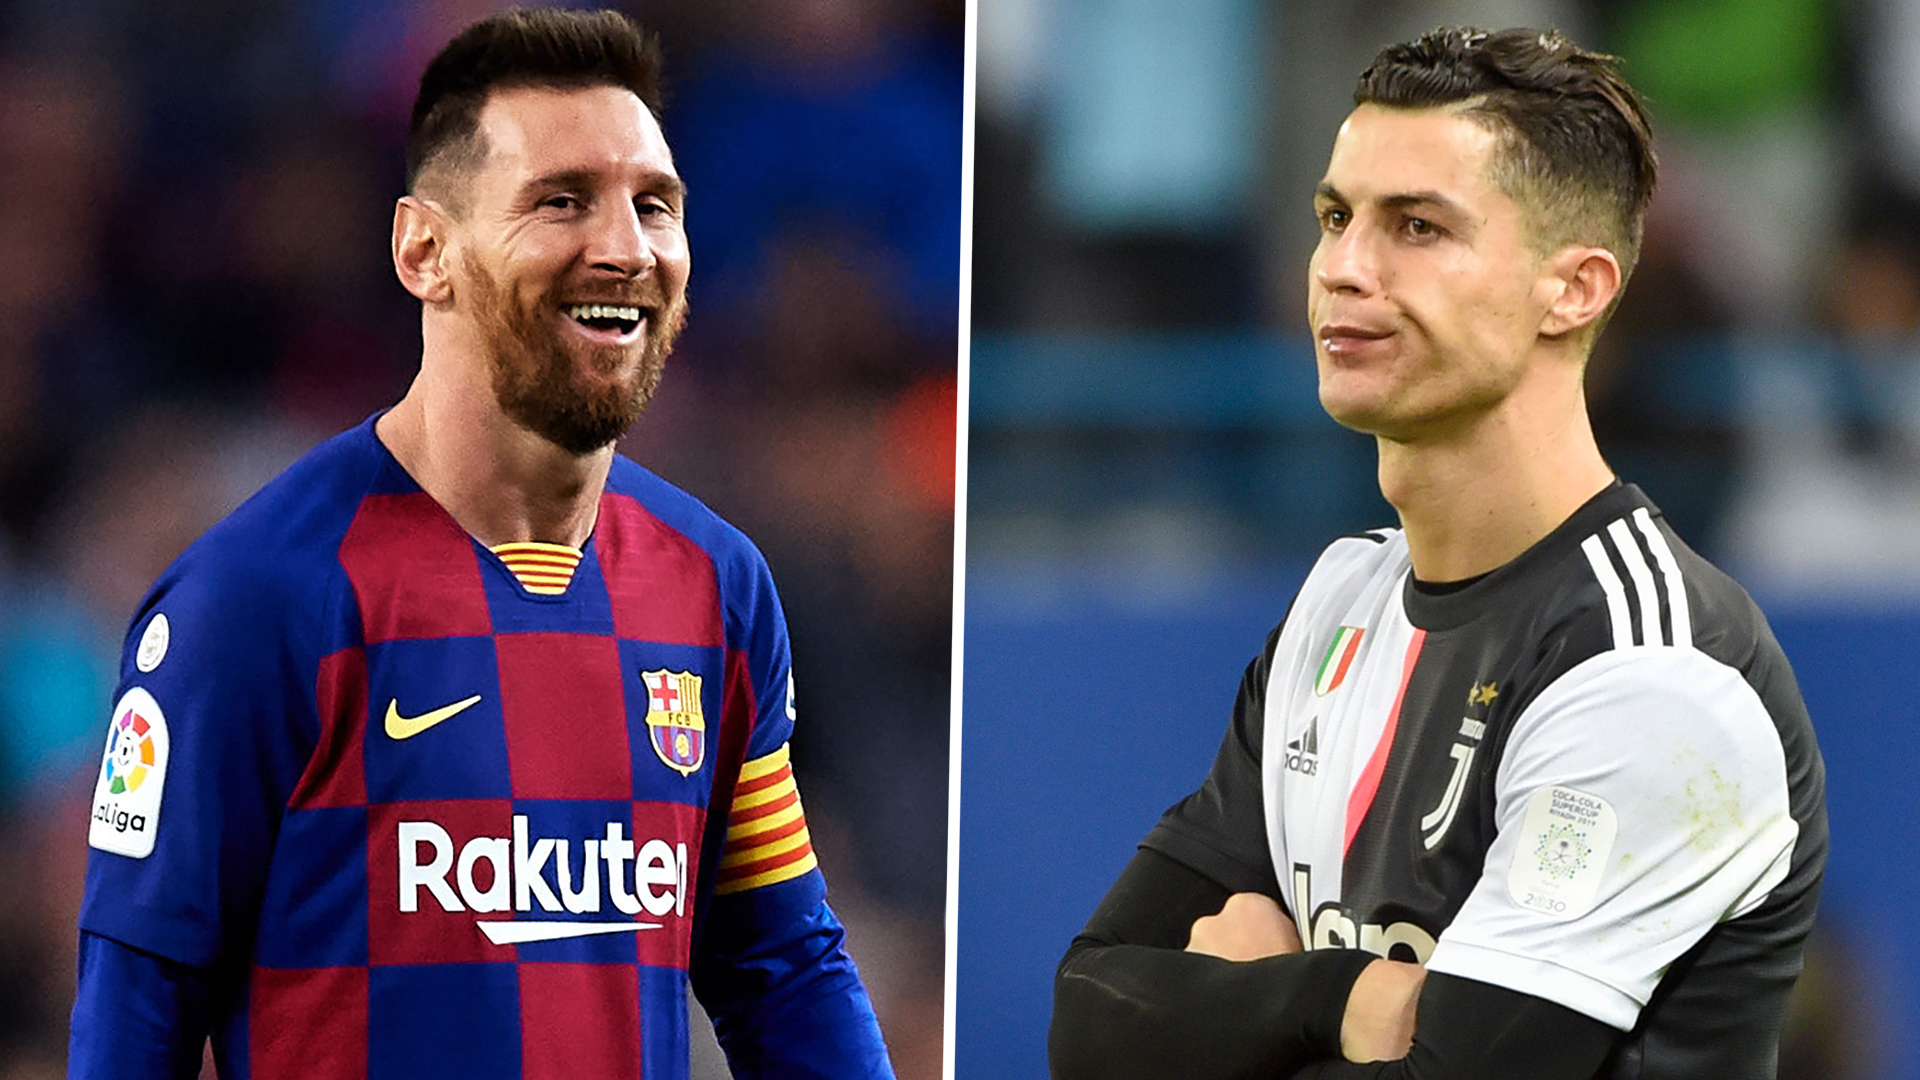 Neymar needs the professionalism of Ronaldo and Messi - Zico